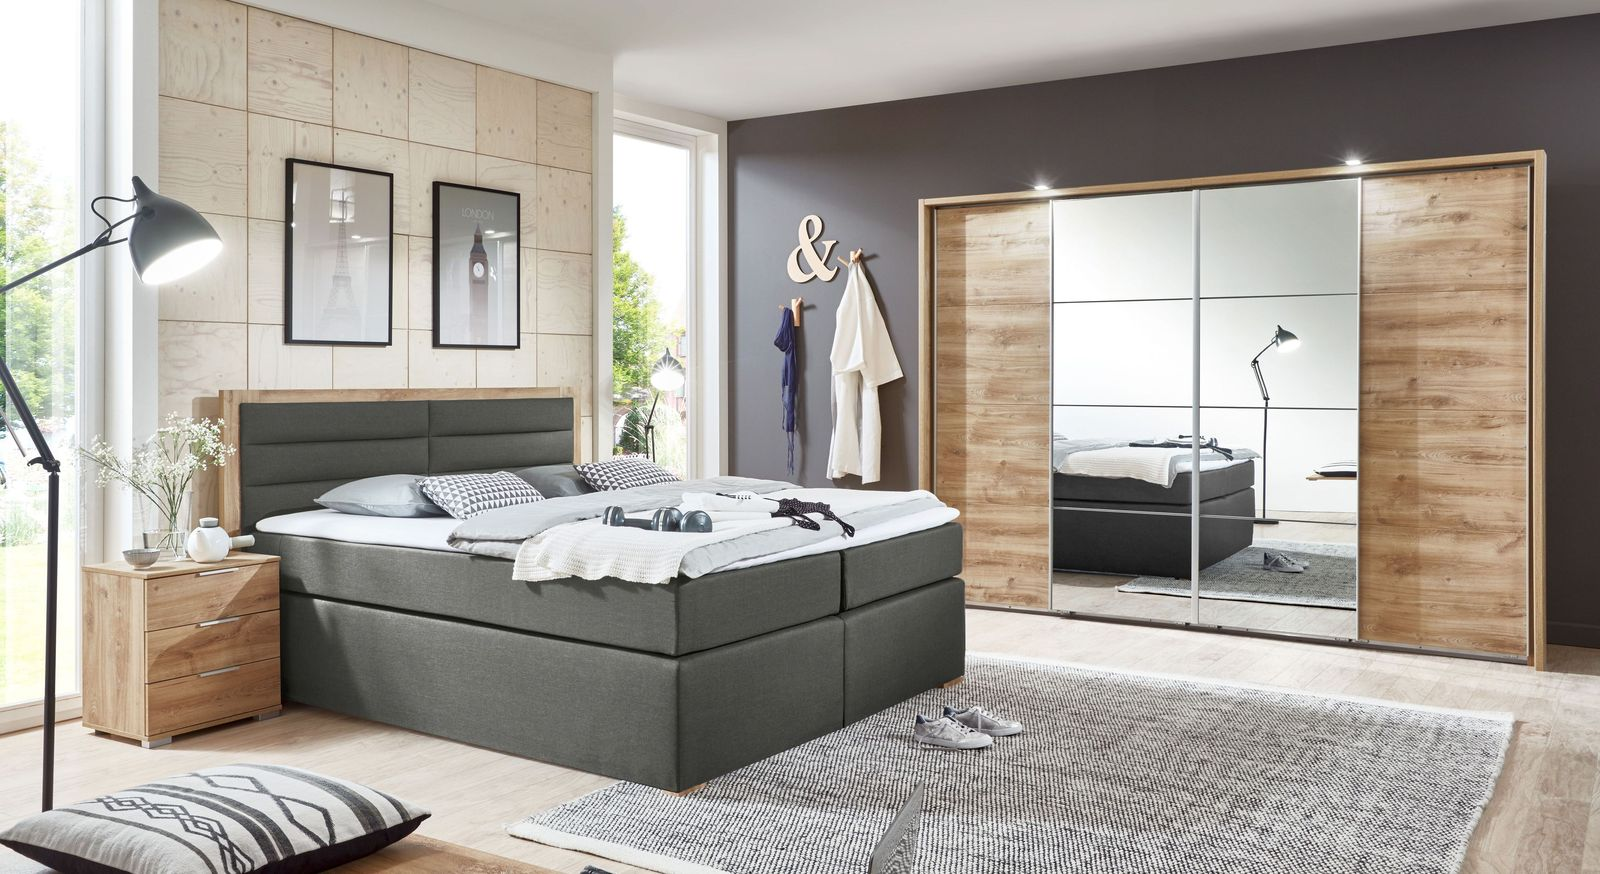 komplett schlafzimmer mit stauraumbett samt topper rovito. Black Bedroom Furniture Sets. Home Design Ideas